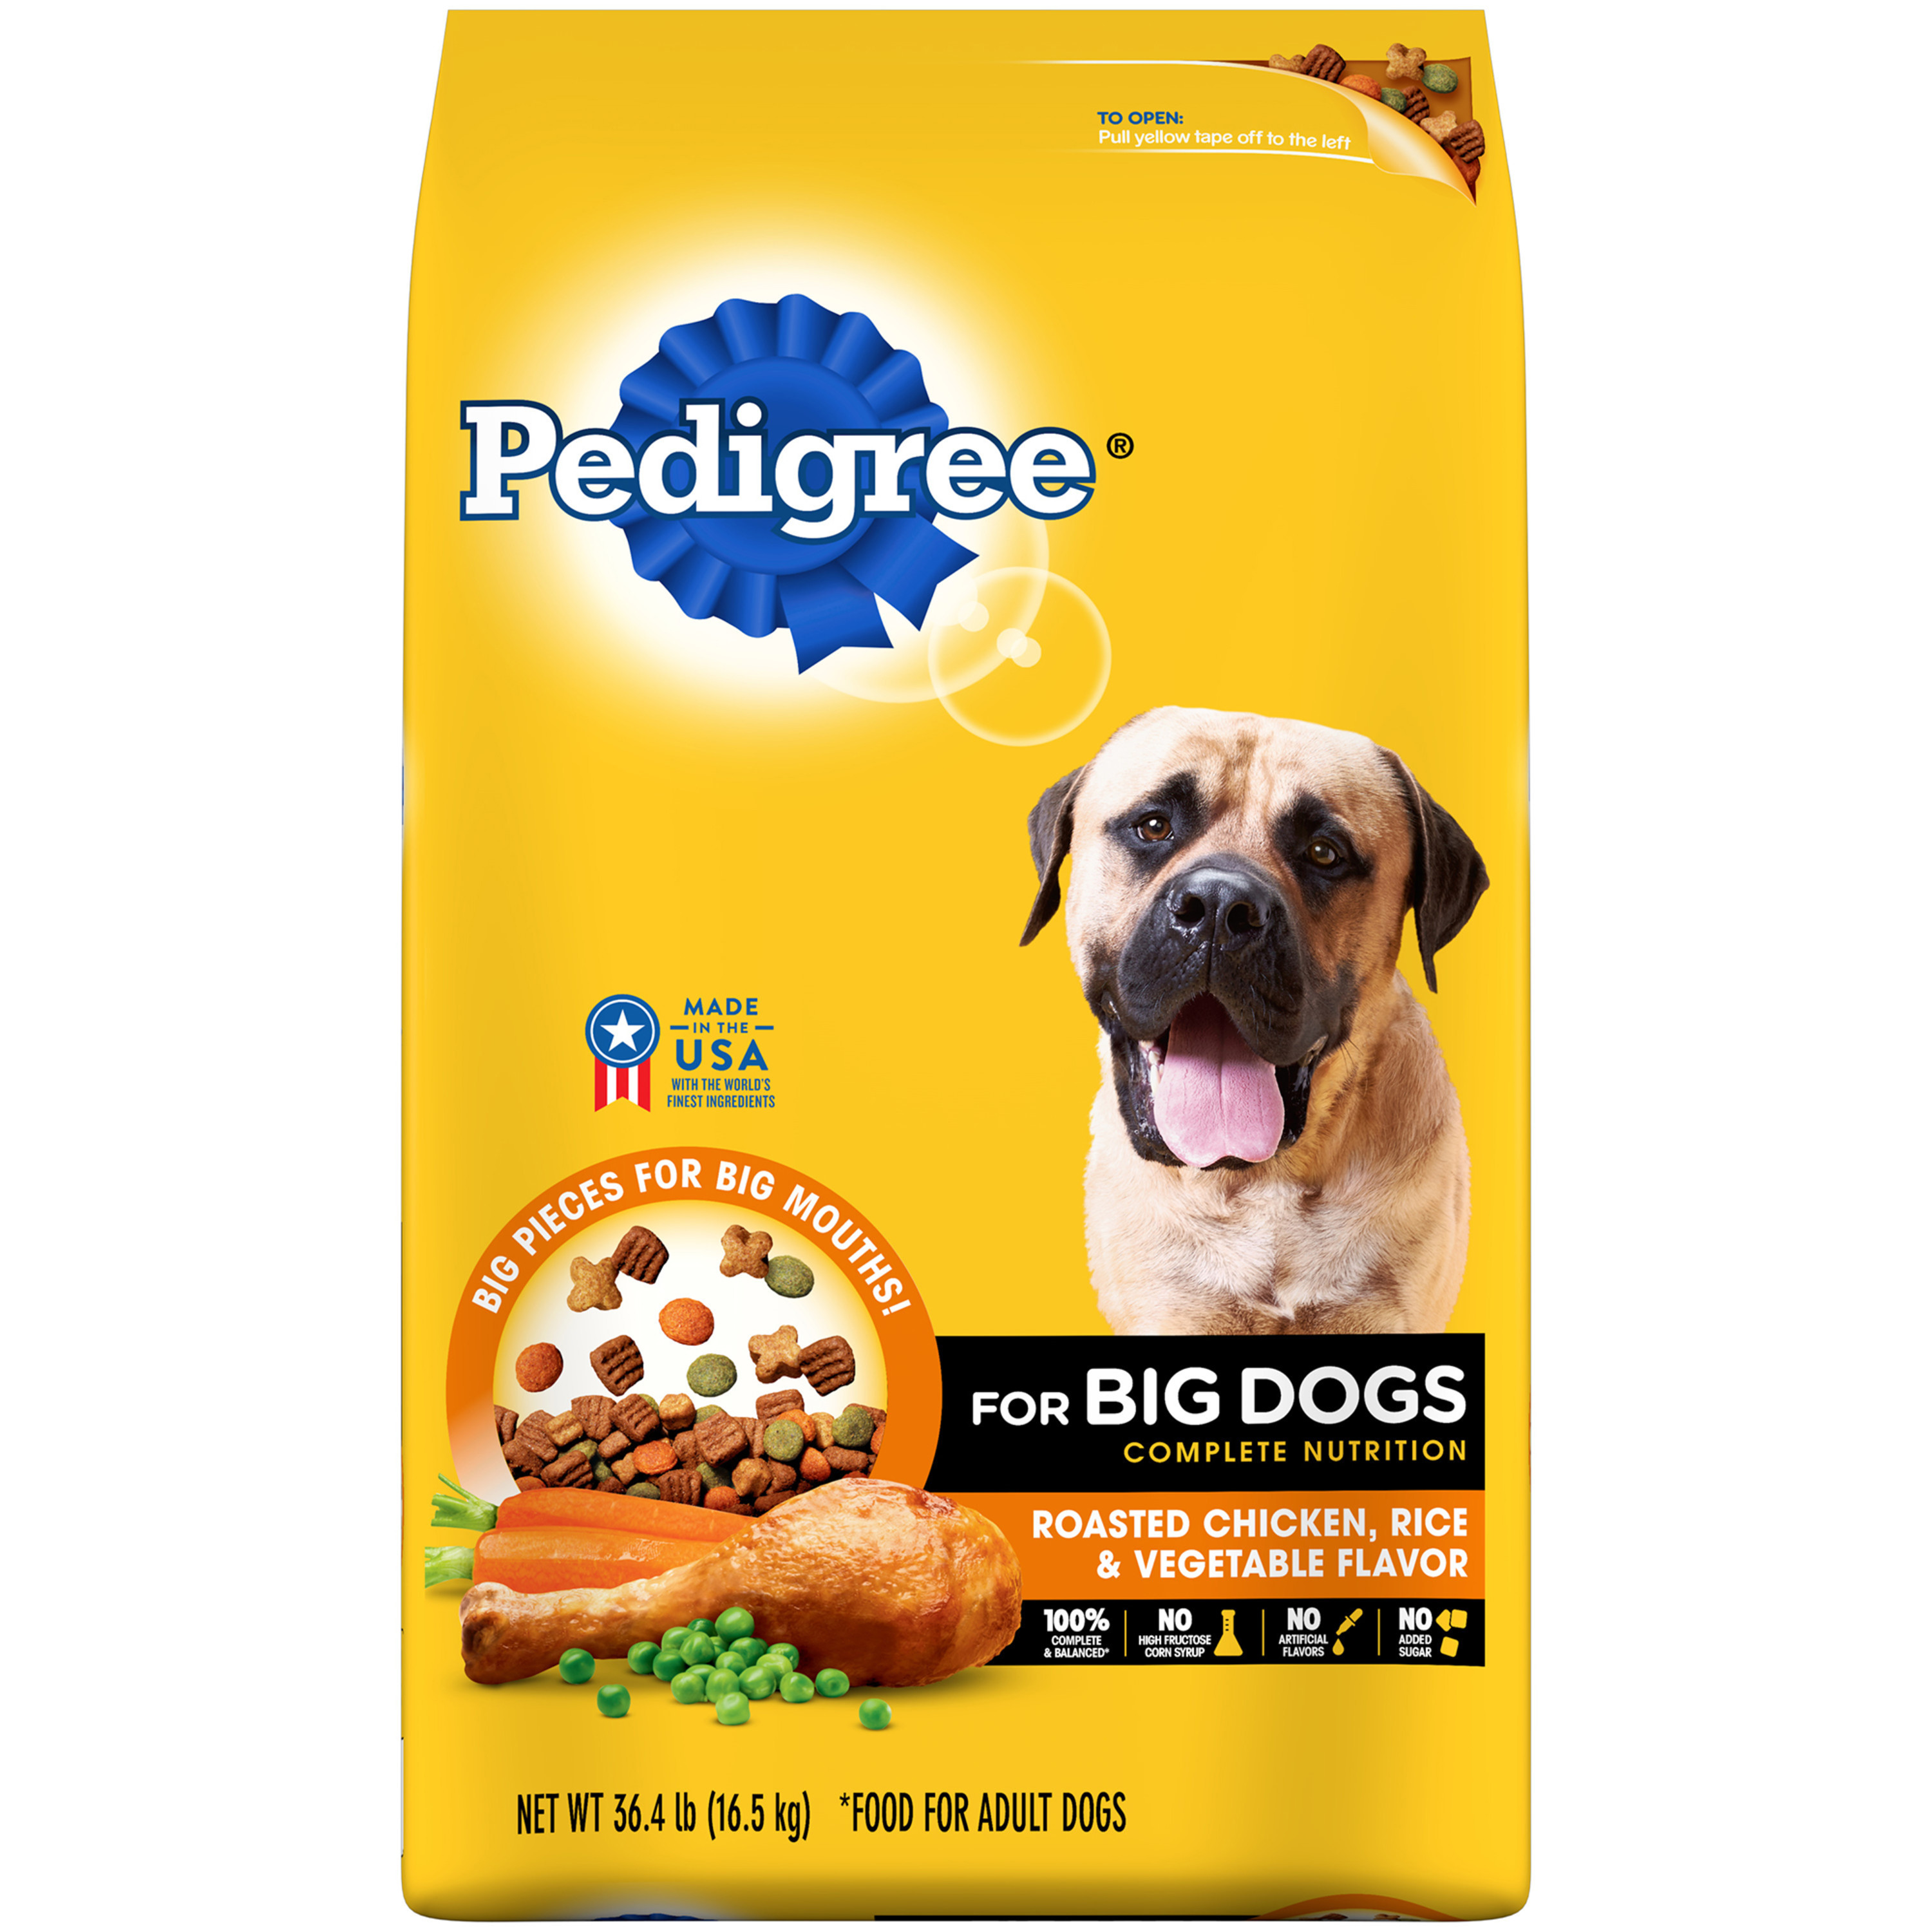 PEDIGREE For Big Dogs Adult Complete Nutrition Dry Dog Food, Roasted Chicken, Rice & Vegetable, 36.4 Lb